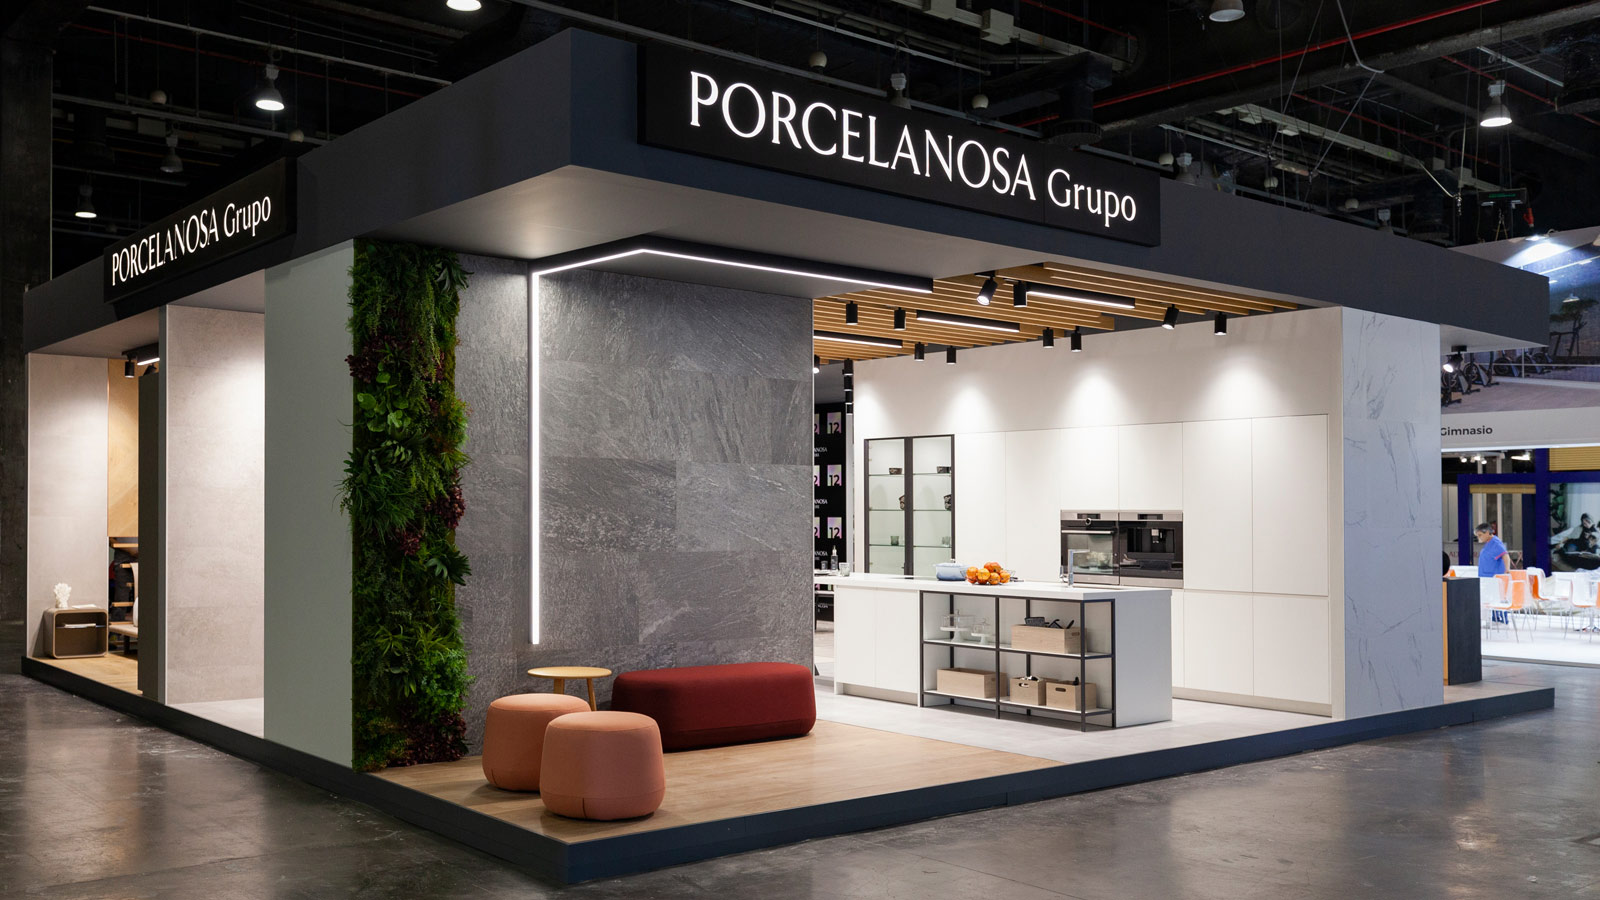 PORCELANOSA Grupo showcases its latest innovations at Urbe 2019